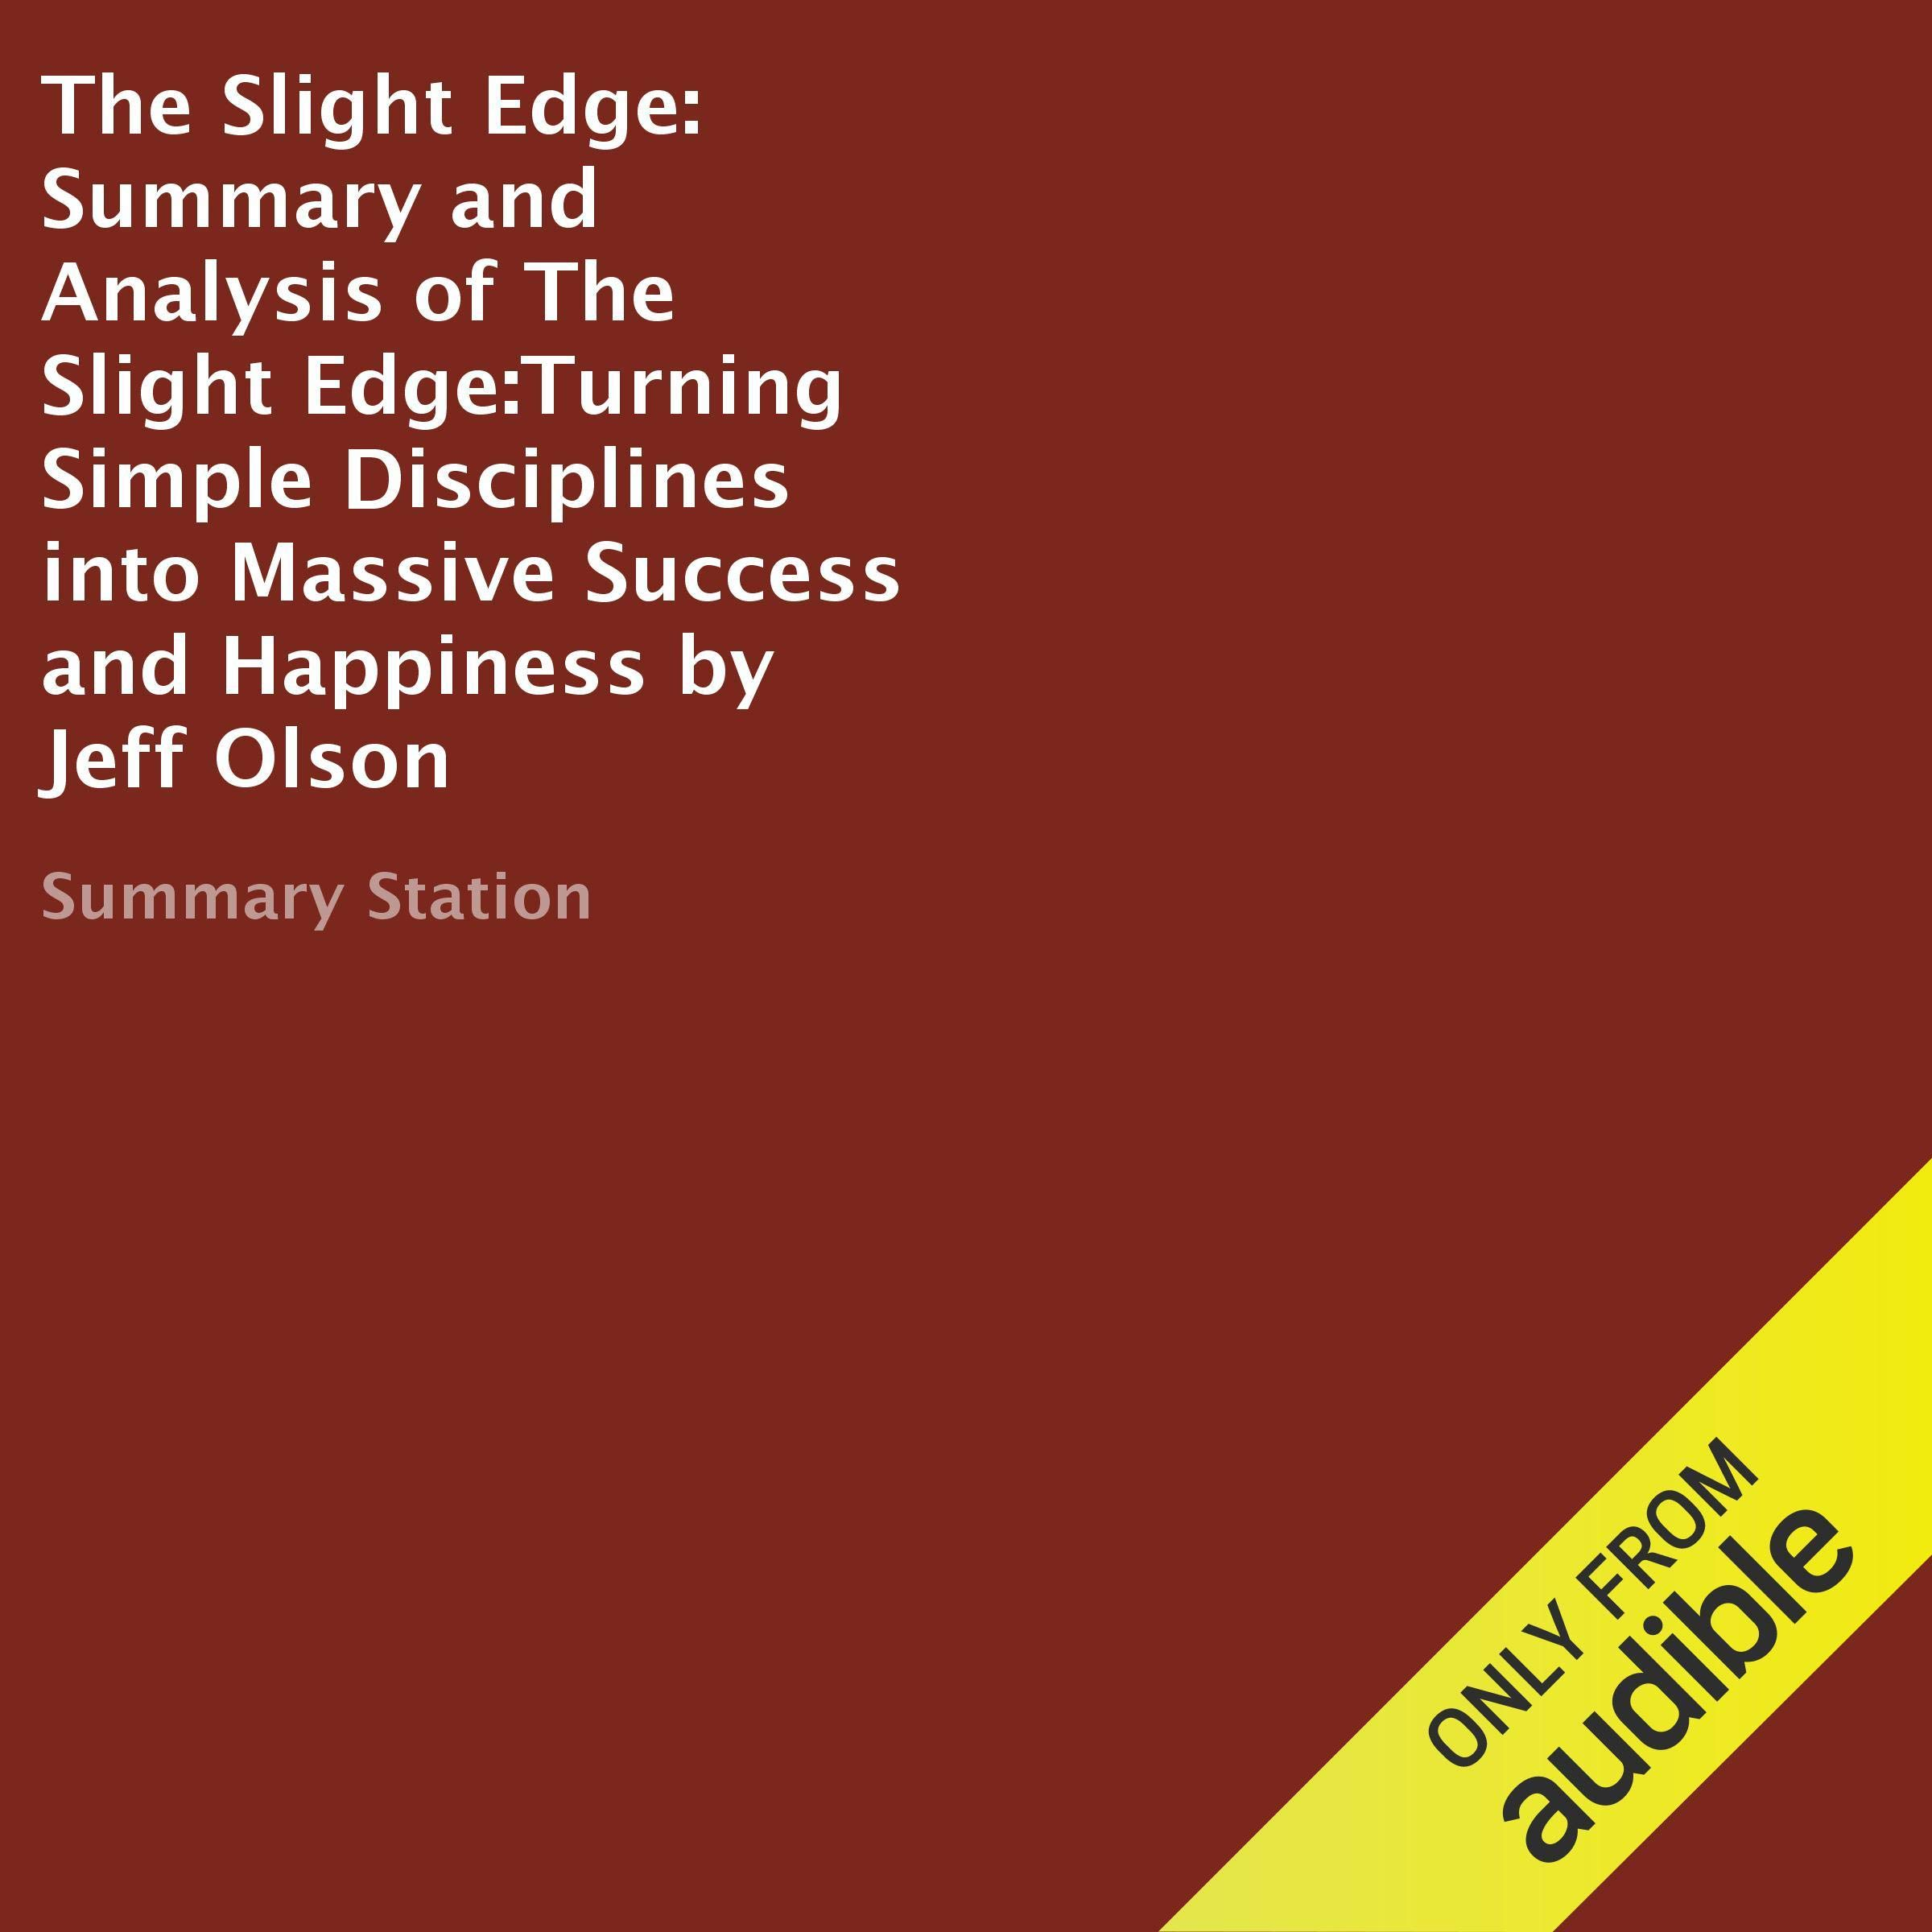 Summary And Analysis Of The Slight Edge  Turning Simple Disciplines Into Massive Success And Happiness By Jeff Olson